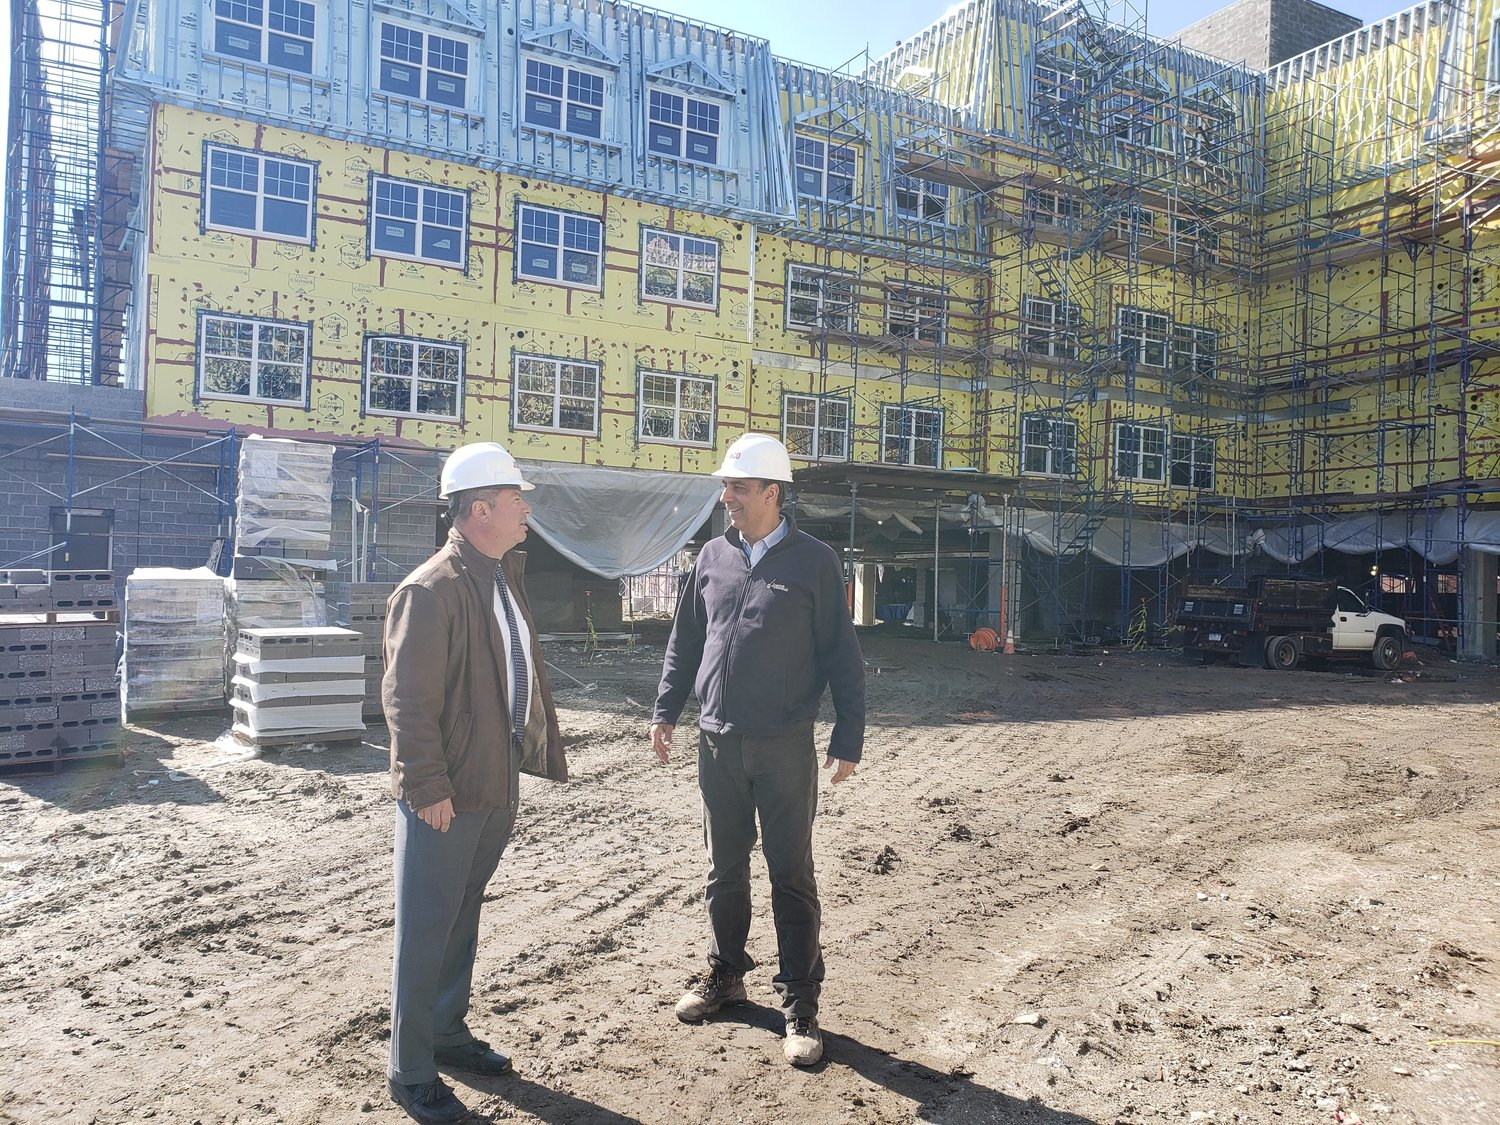 The Freeport Housing Authority's executive director, John Hrvatin, left, chatted with Jobco's project manager, Spiros Triantafyllou, about the progress on the new Moxey Rigby.